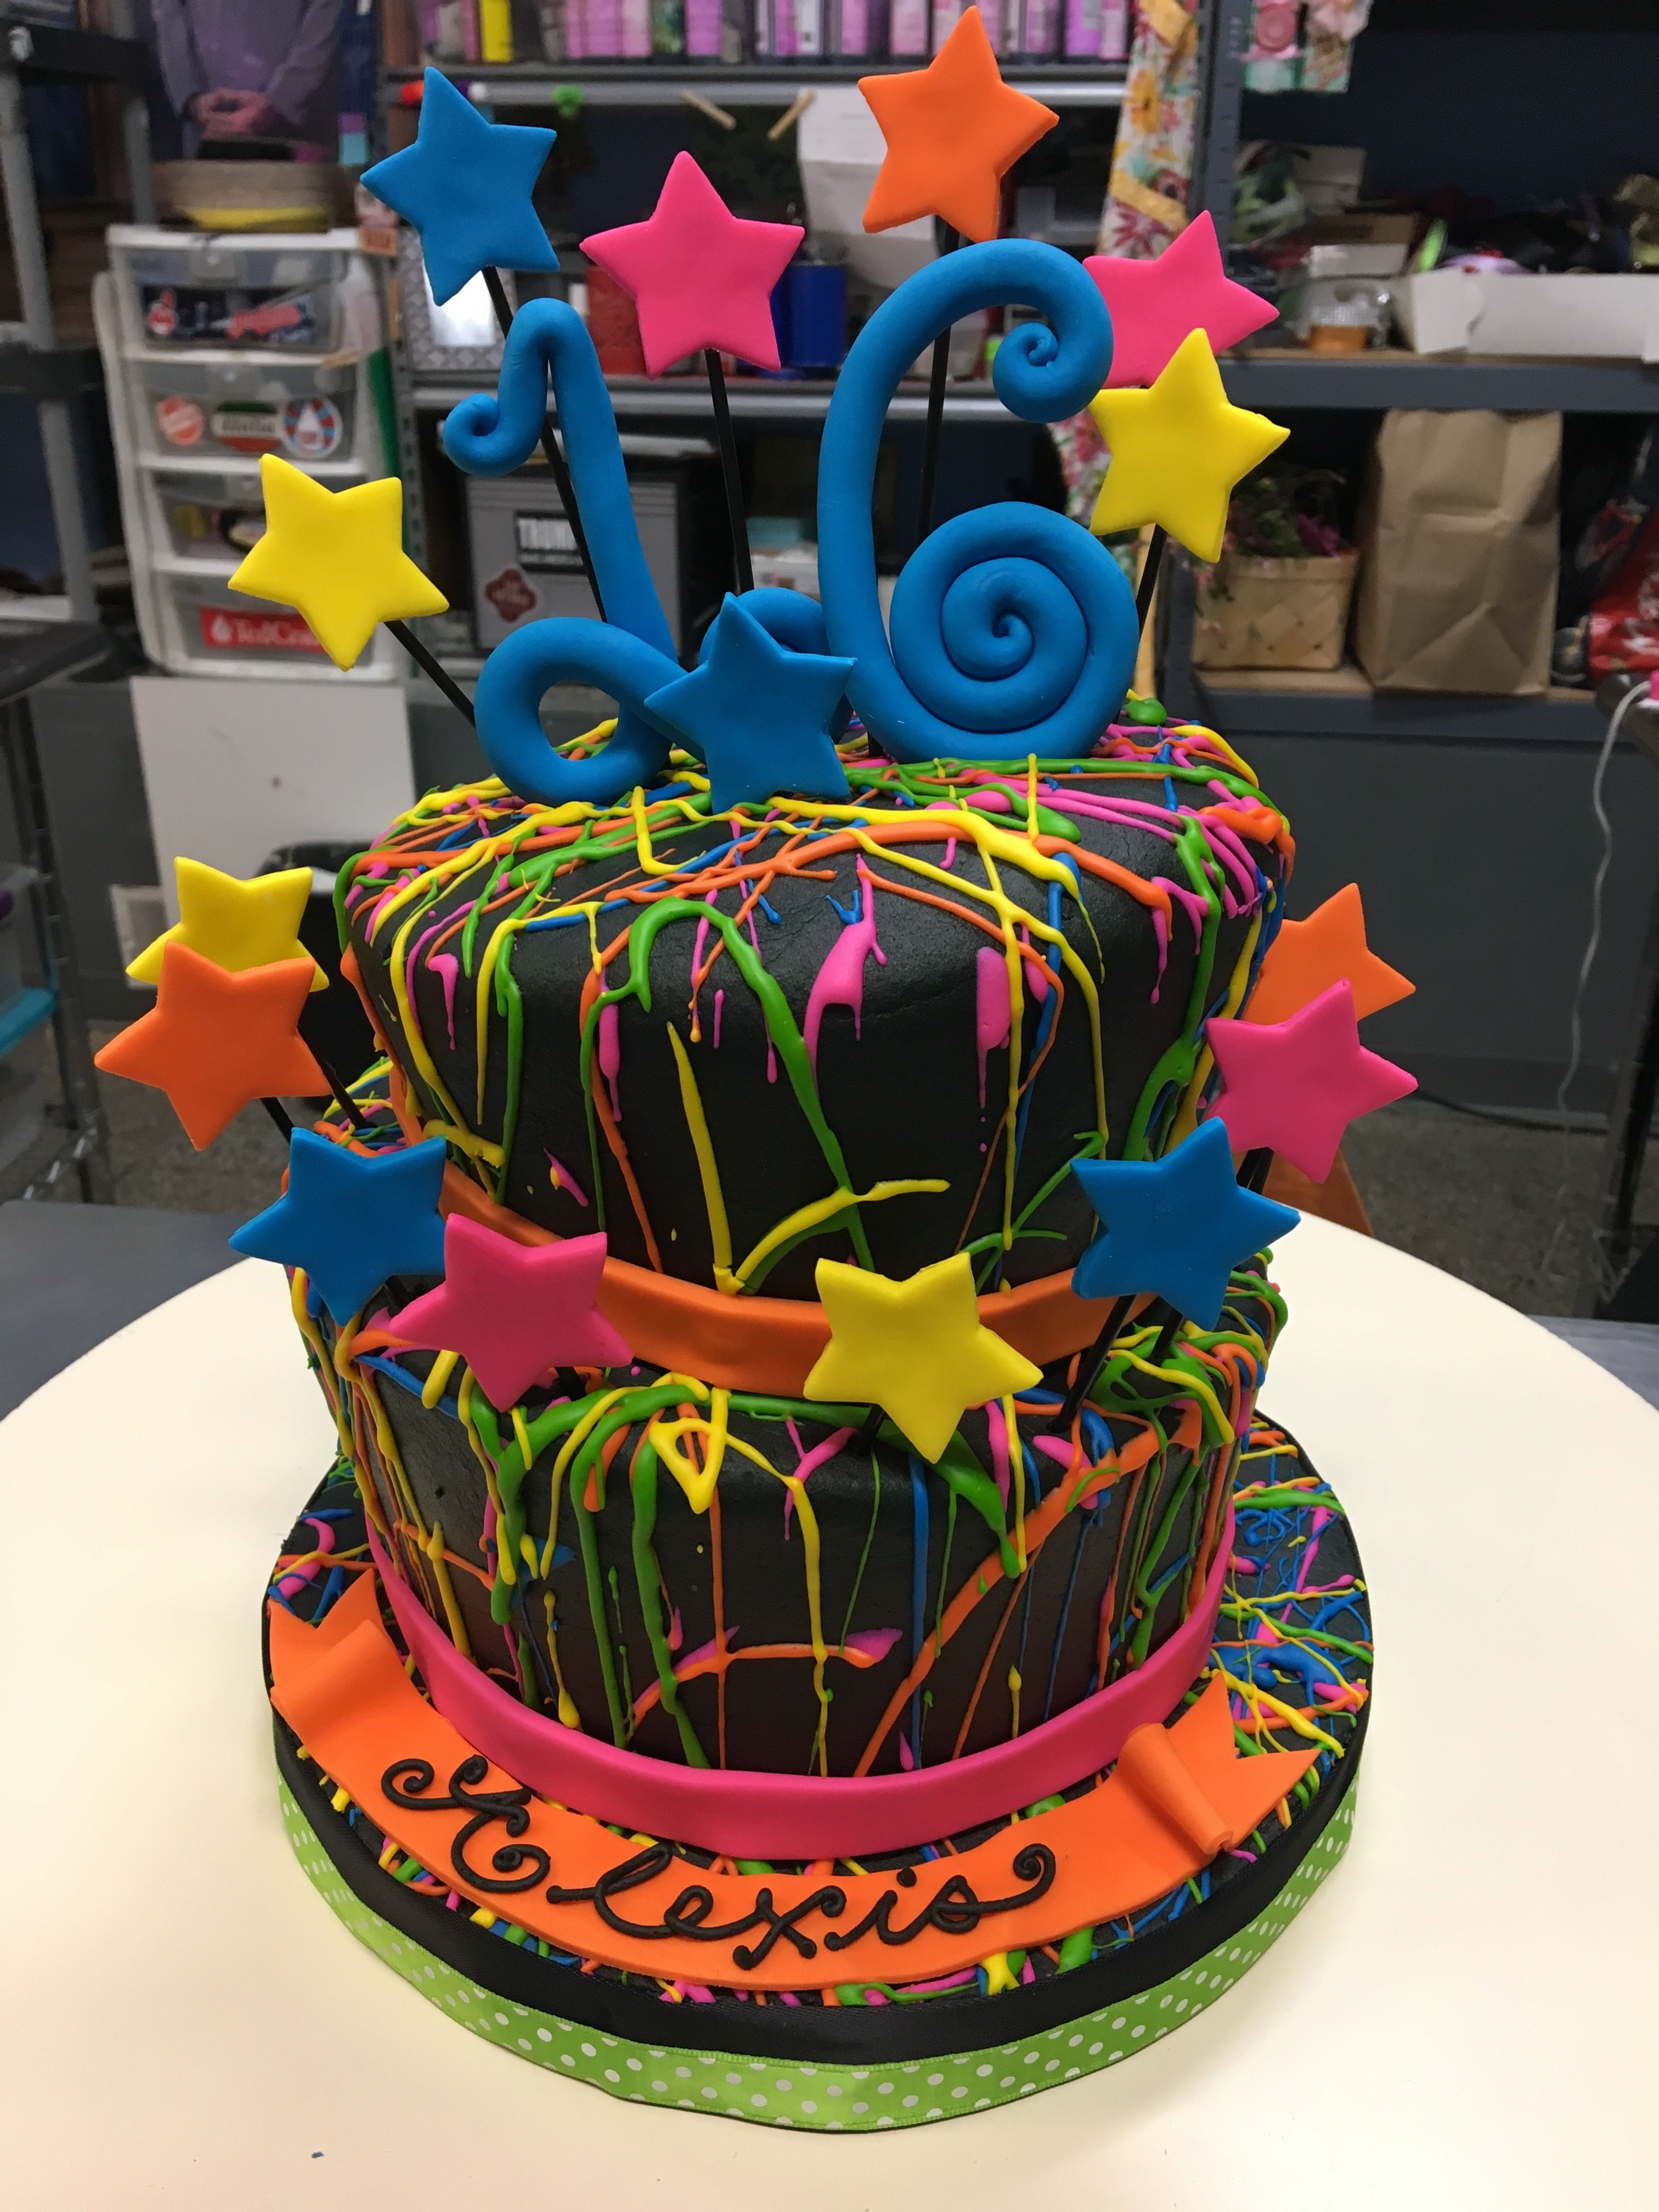 Remarkable Neon Splatters And Stars Birthday Cake Adrienne Co Bakery Funny Birthday Cards Online Fluifree Goldxyz